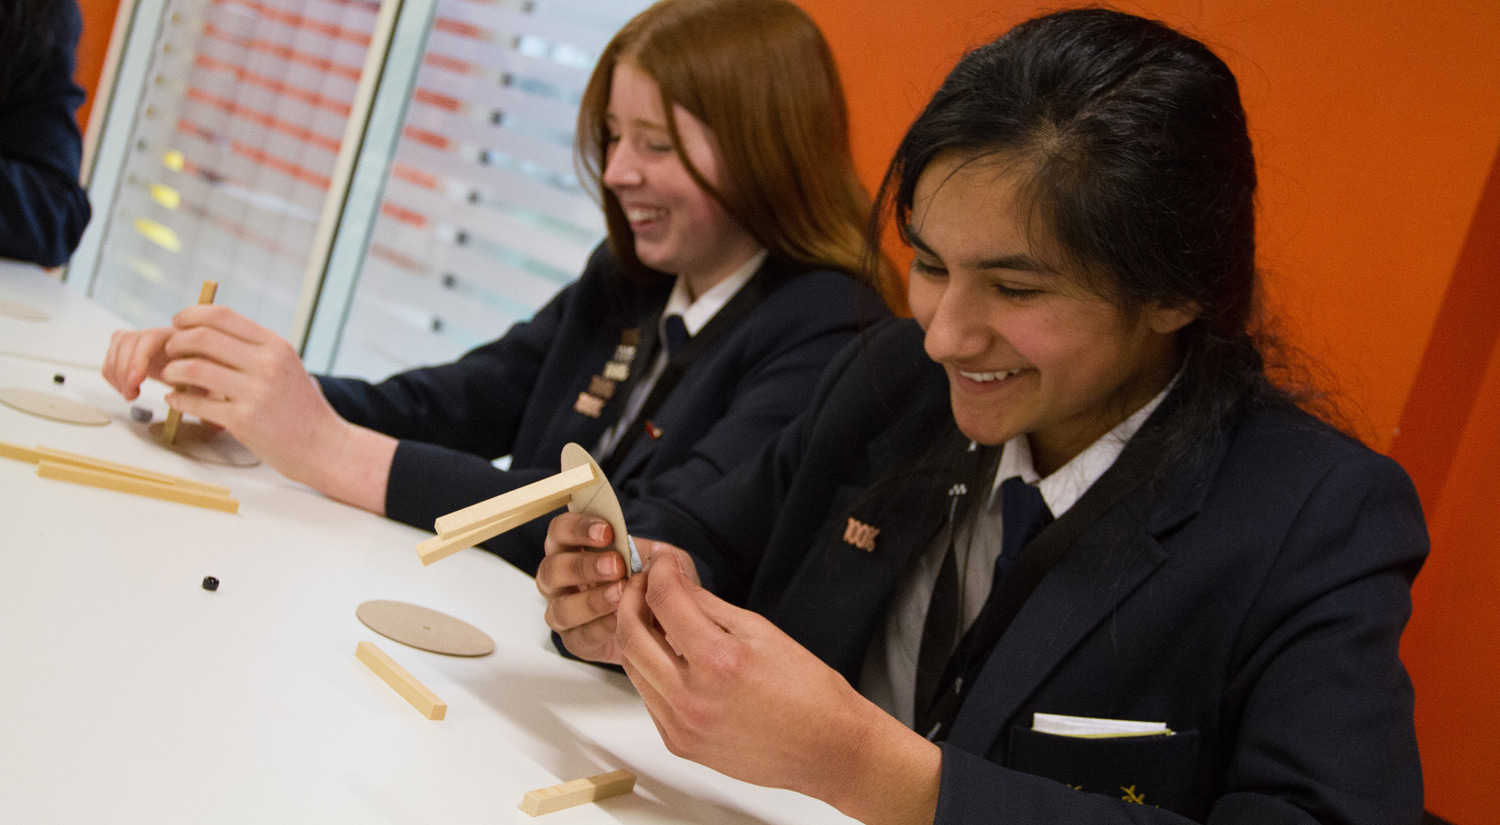 Sphere Science set the pace with a roller engineering challenge